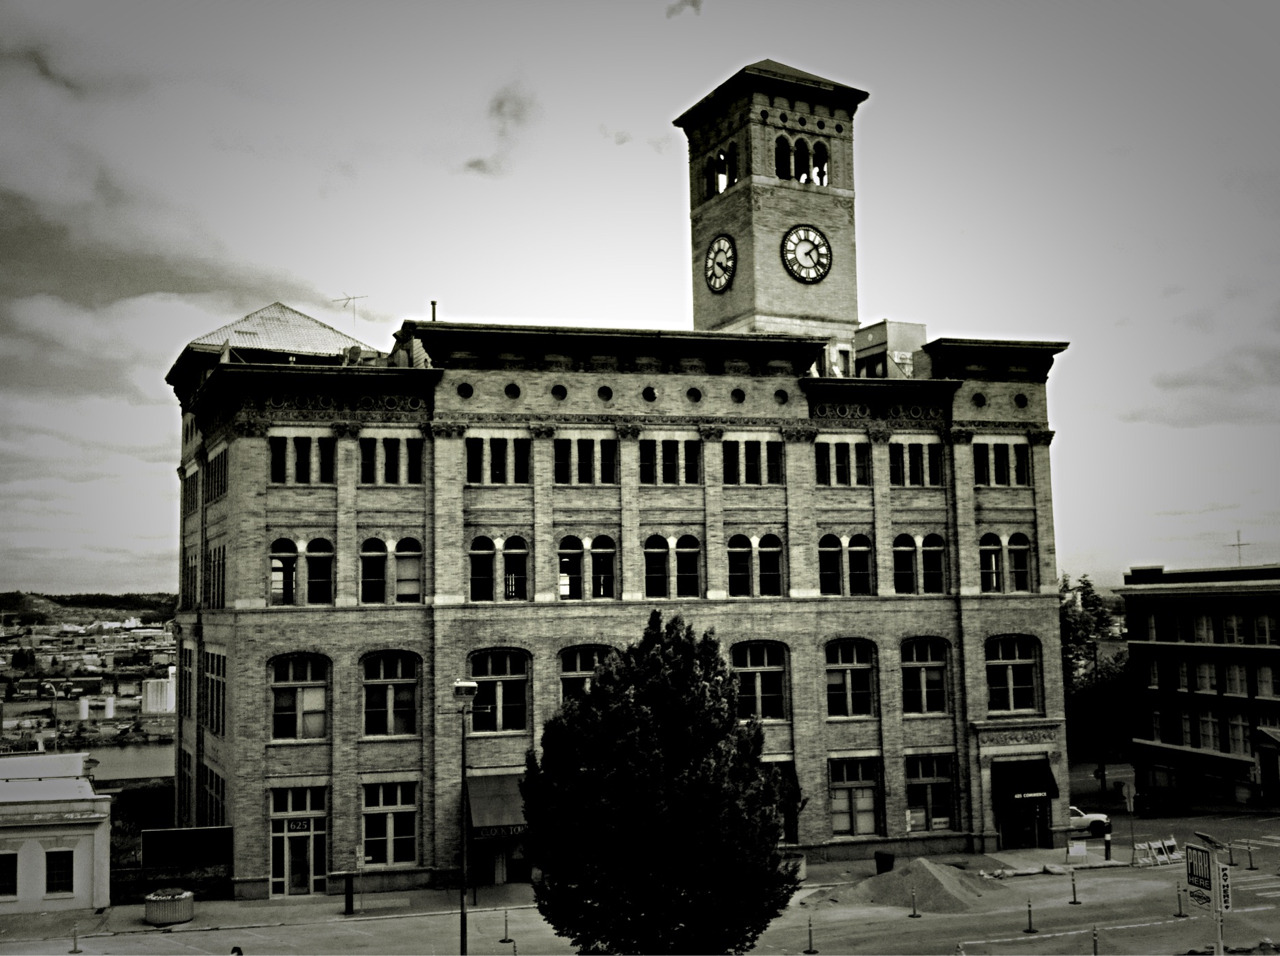 Building With Clock Tower, Tacoma #645Pro #DramaticB&W © 2012 Kent Kangley